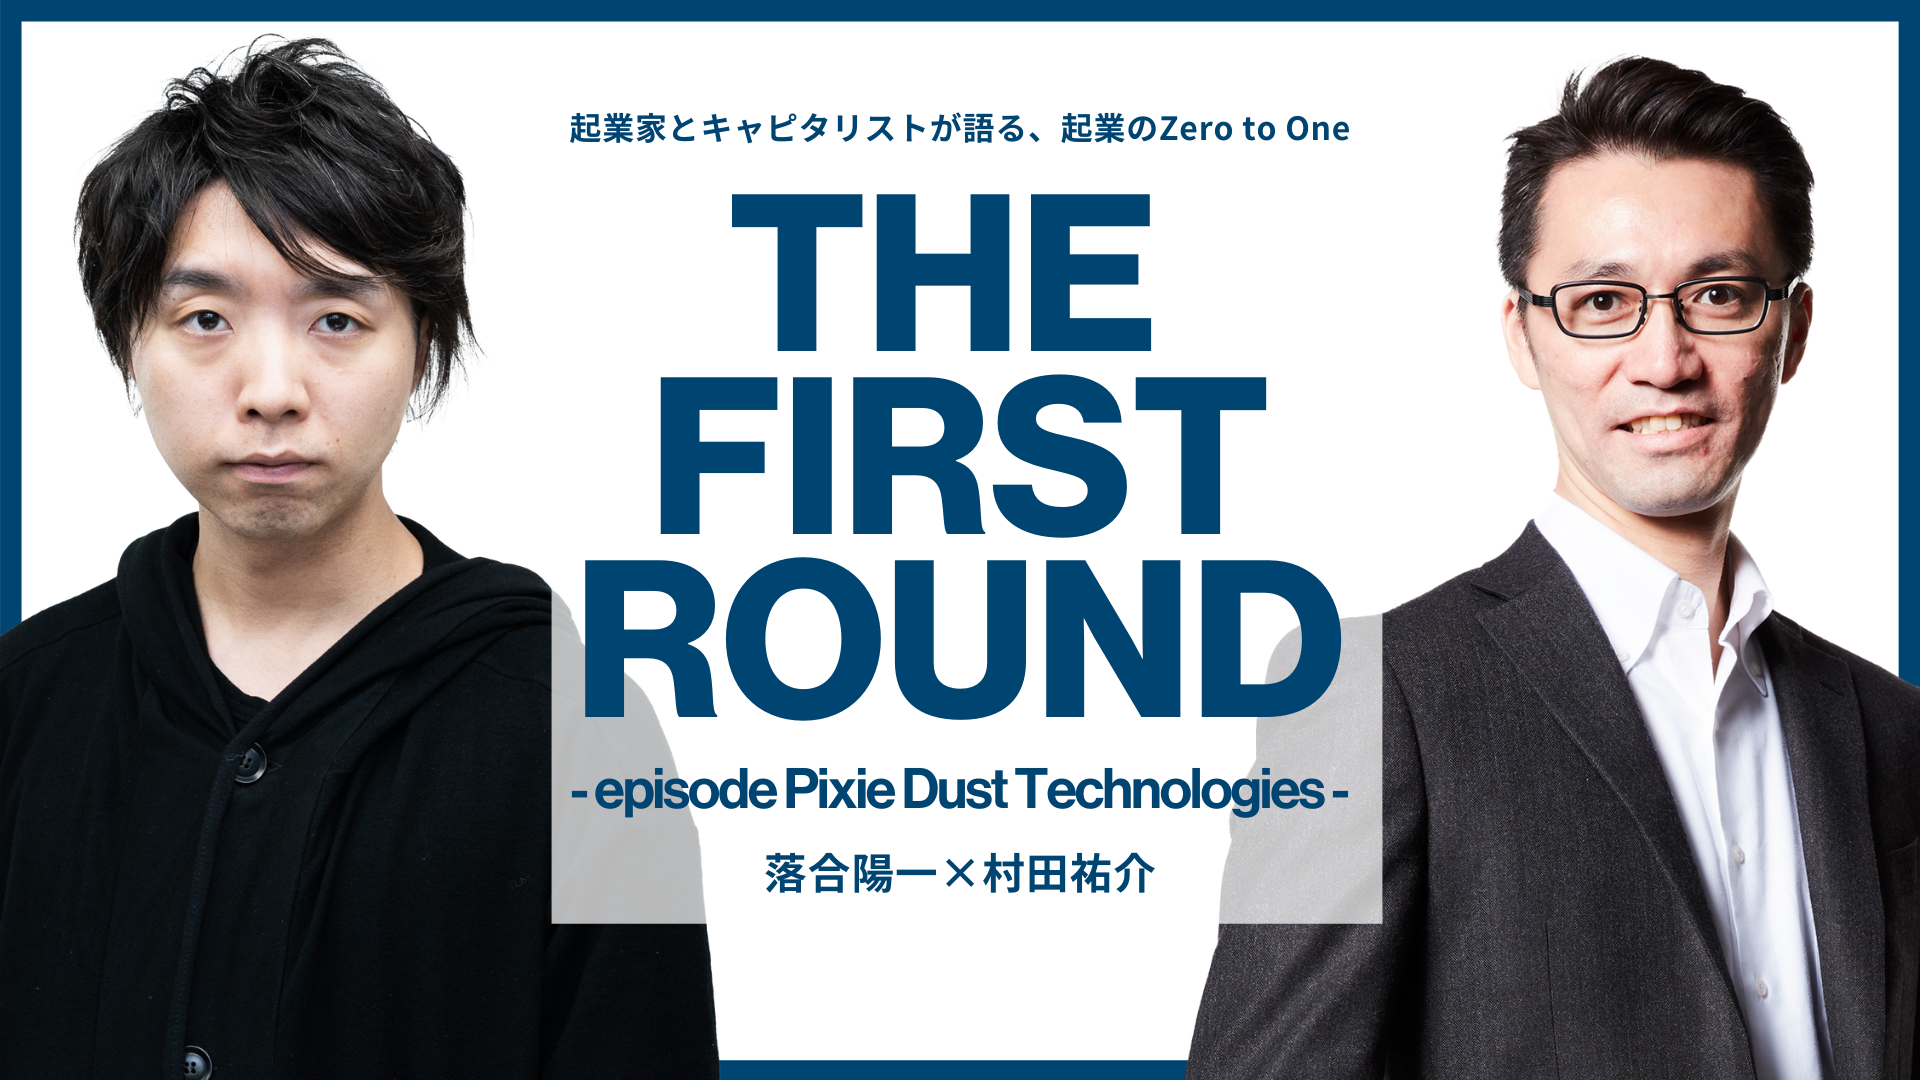 THE FIRST ROUND - episode Pixie Dust Technologies -